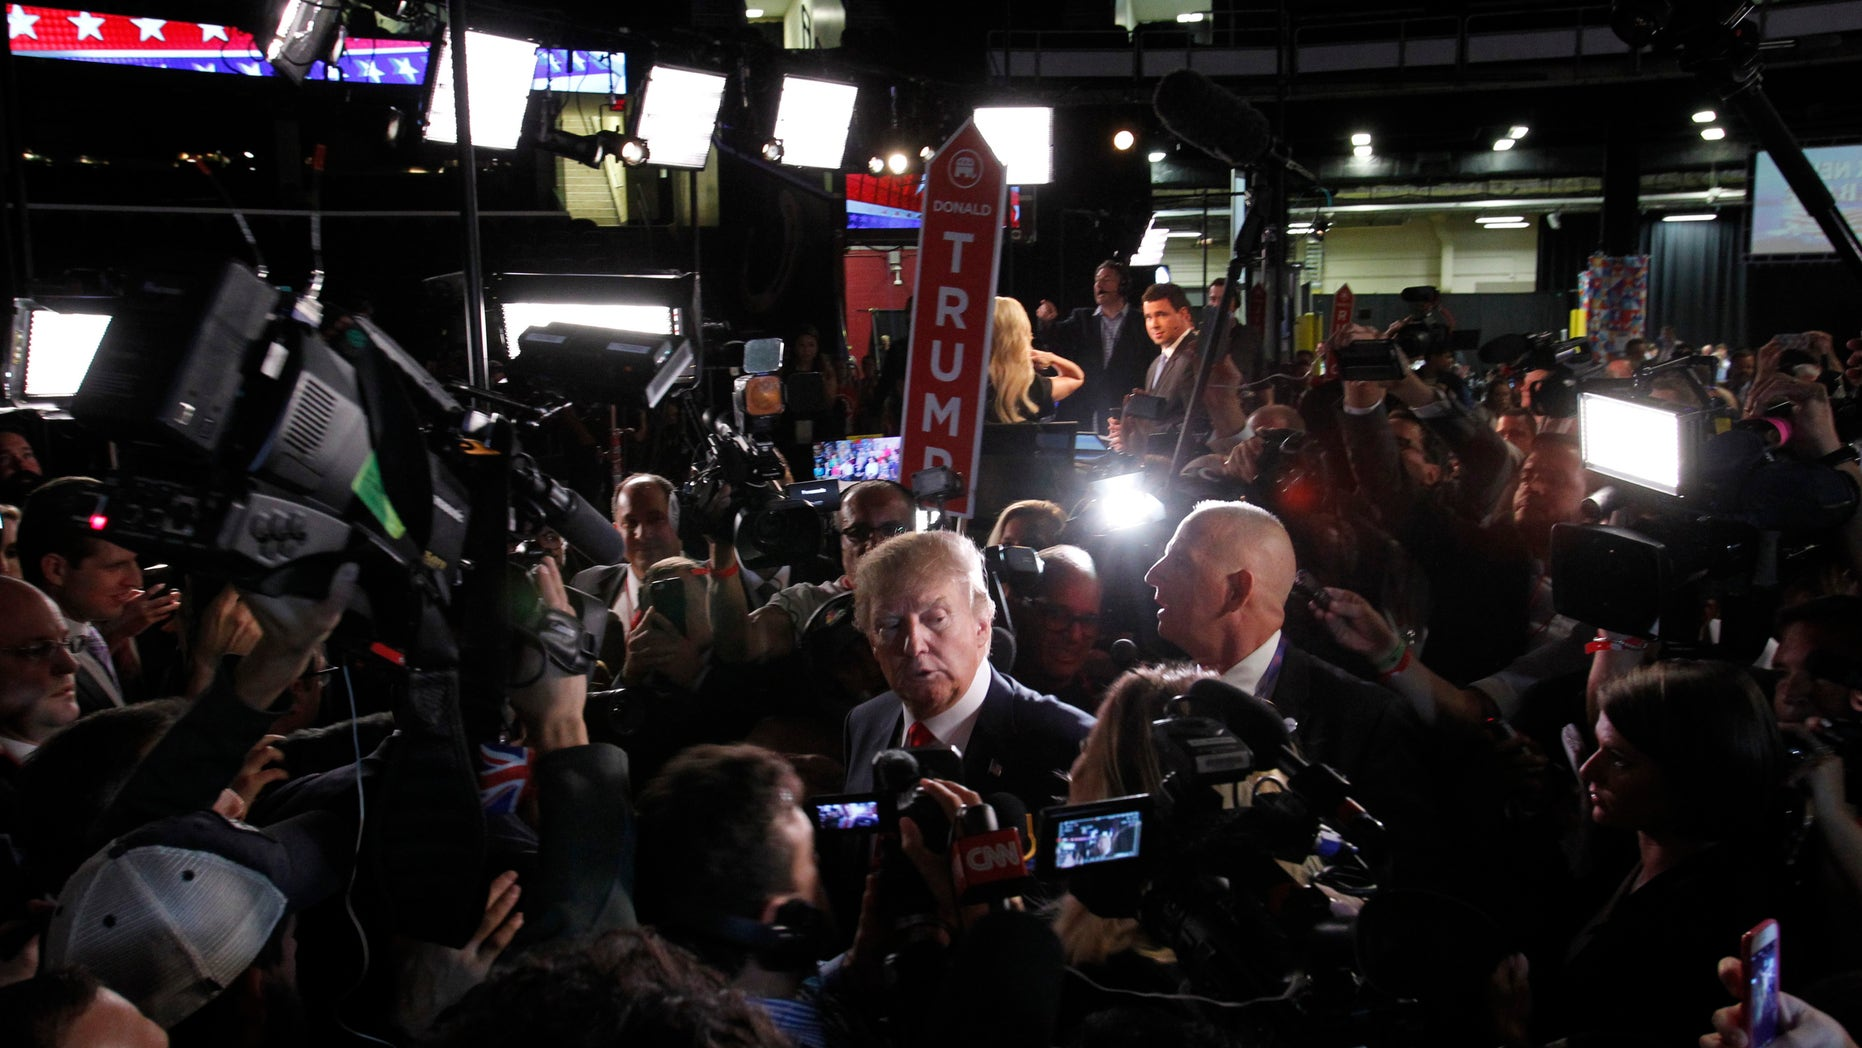 """Republican 2016 U.S. presidential candidate businessman Donald Trump is surrounded by news media in the """"spin room"""" after the conclusion of the first official Republican presidential candidates debate of the 2016 U.S. presidential campaign in Cleveland, Ohio, August 6, 2015."""